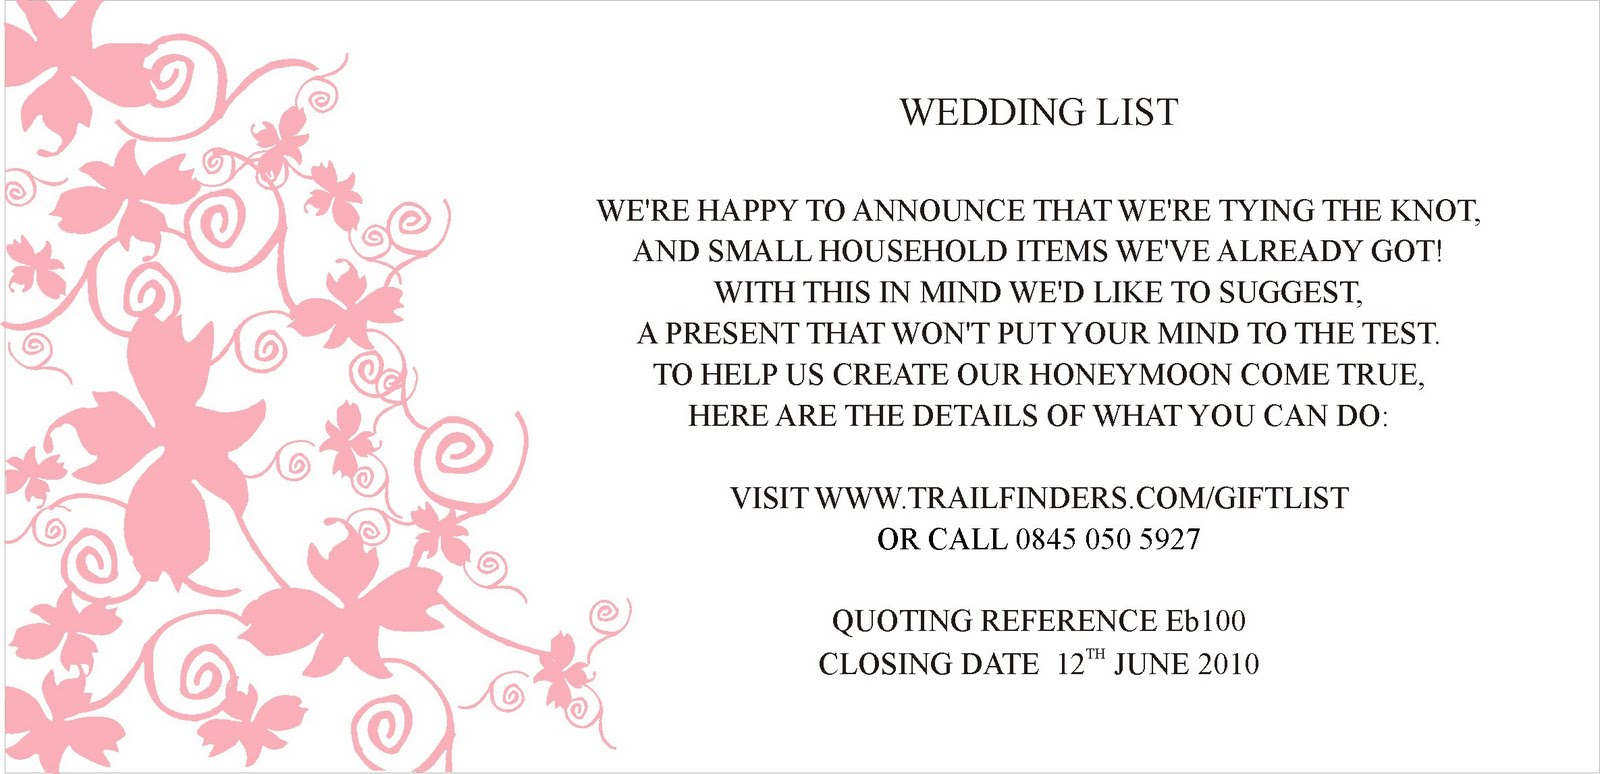 Wedding Gift List Poems Honeymoon : wedding gift card serves a practical purpose, saving you from ten ...